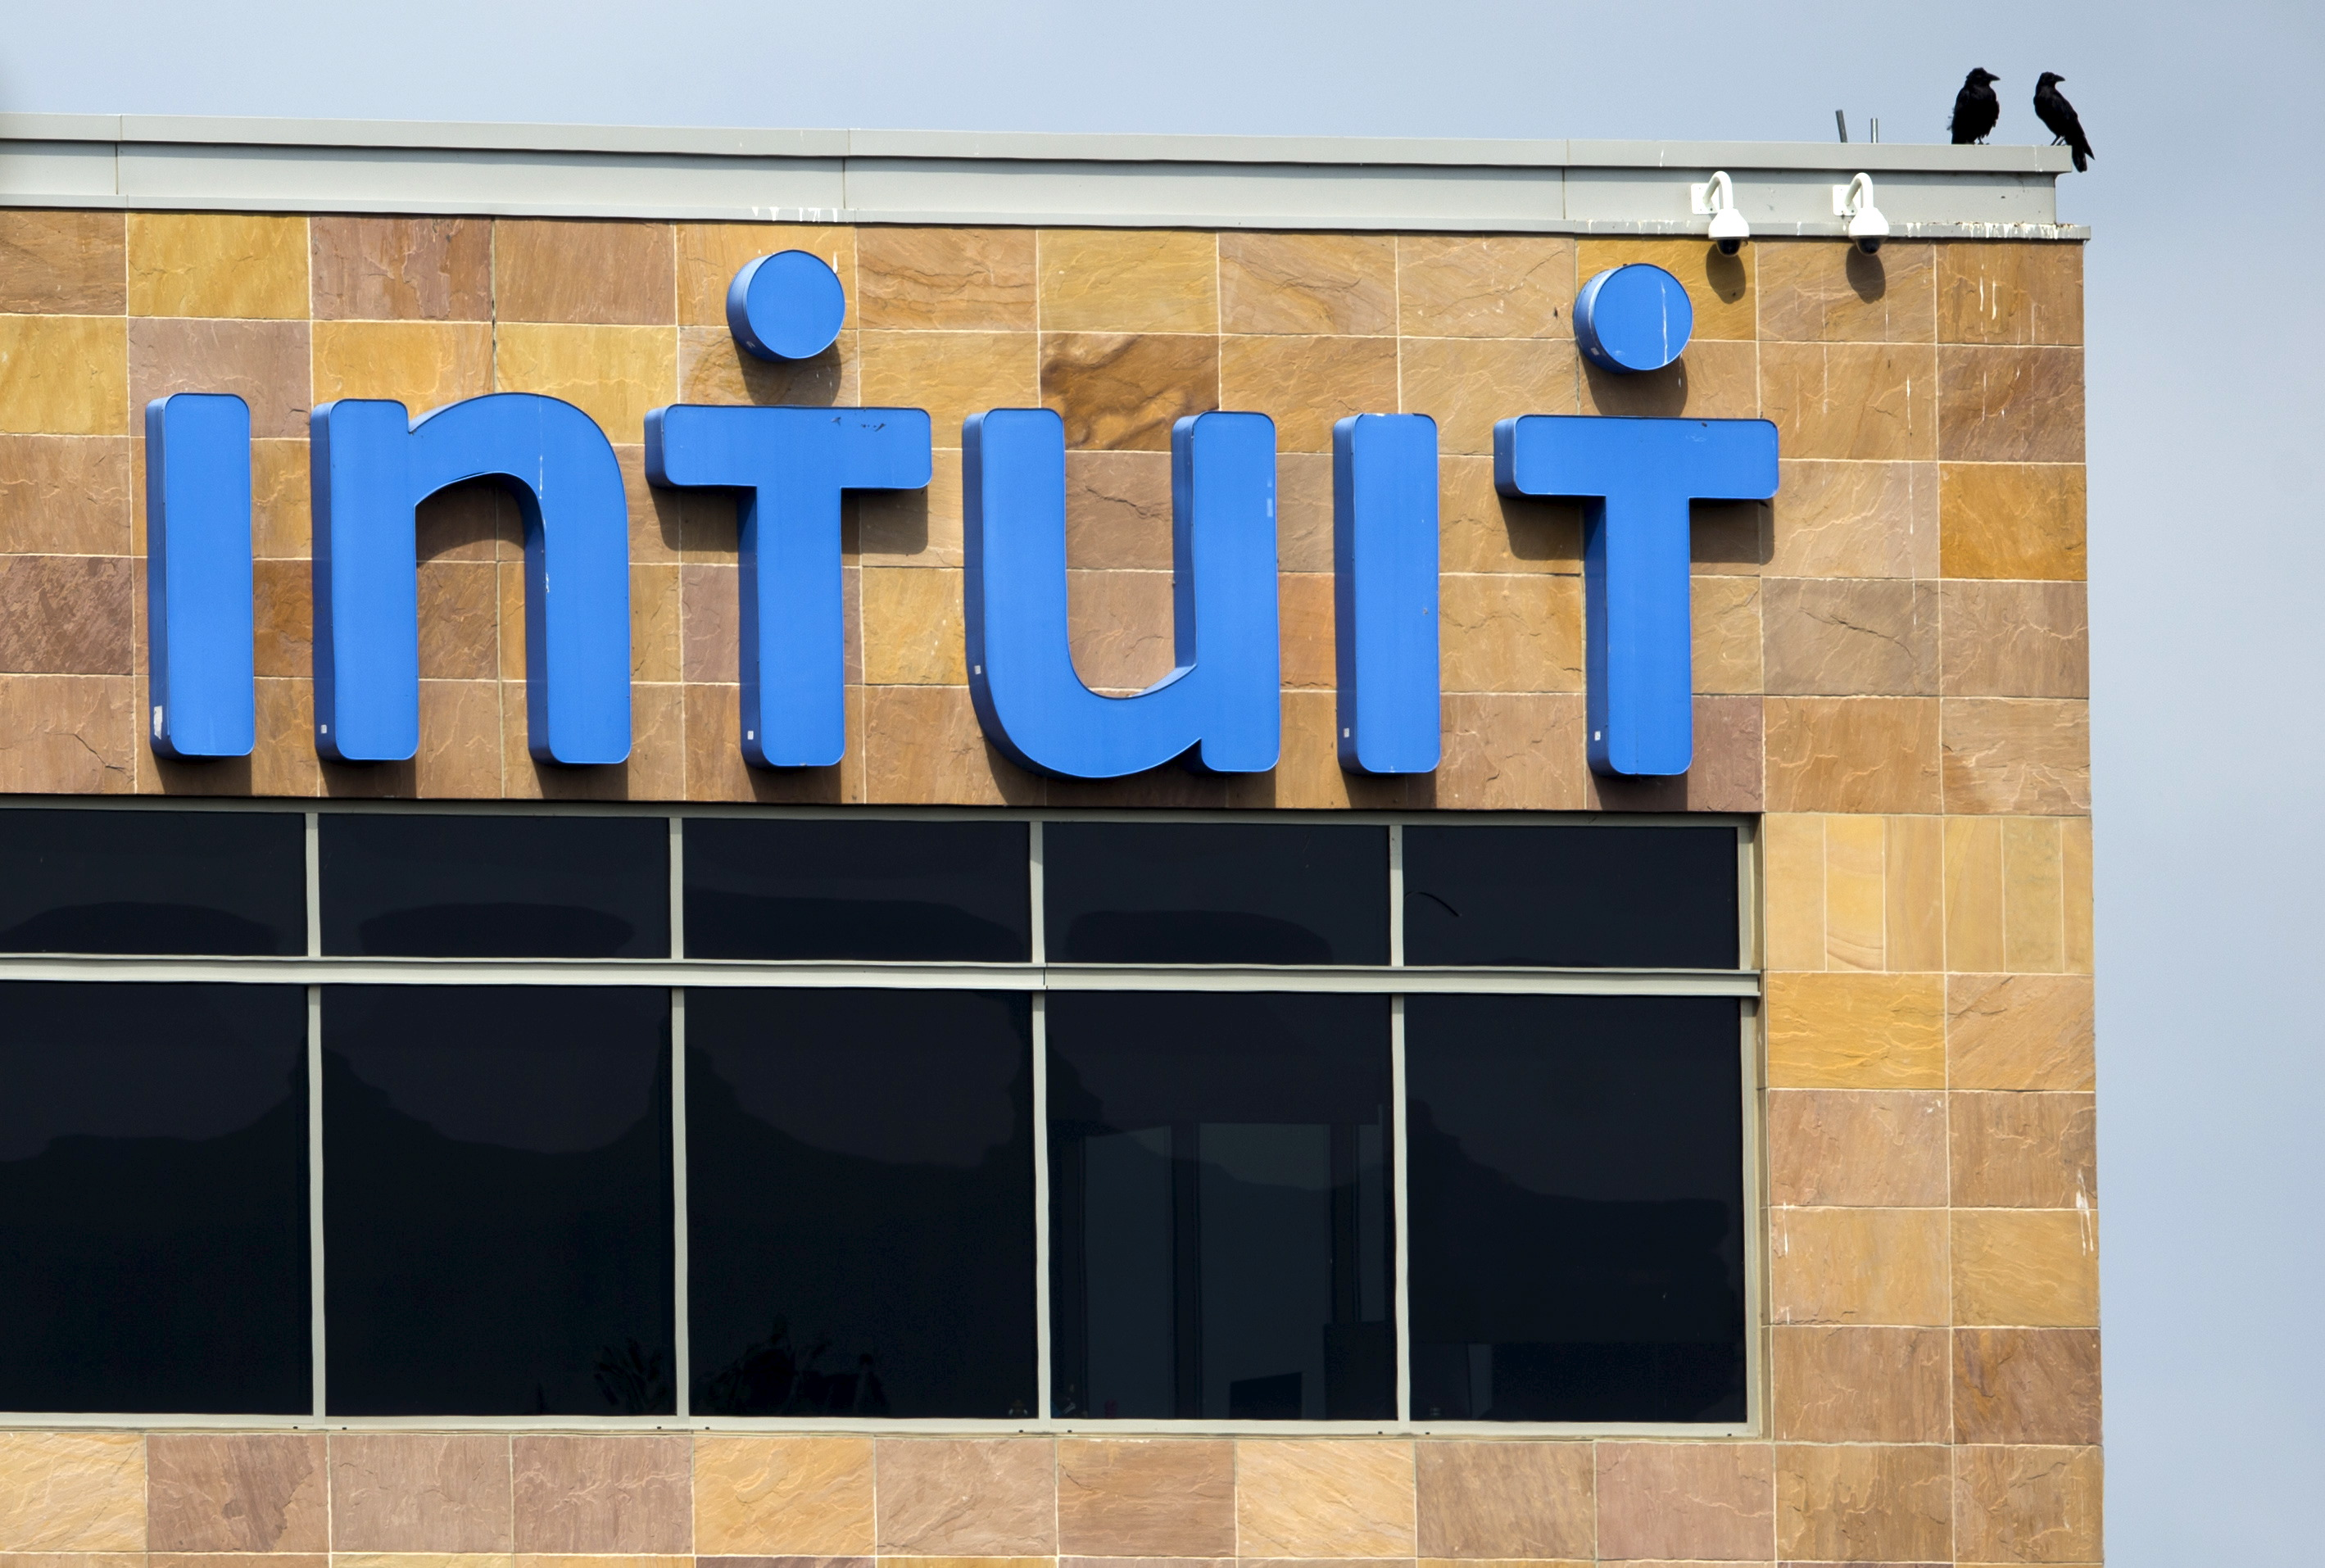 An Intuit office is shown in San Diego, Aug. 21, 2015. REUTERS/Mike Blake